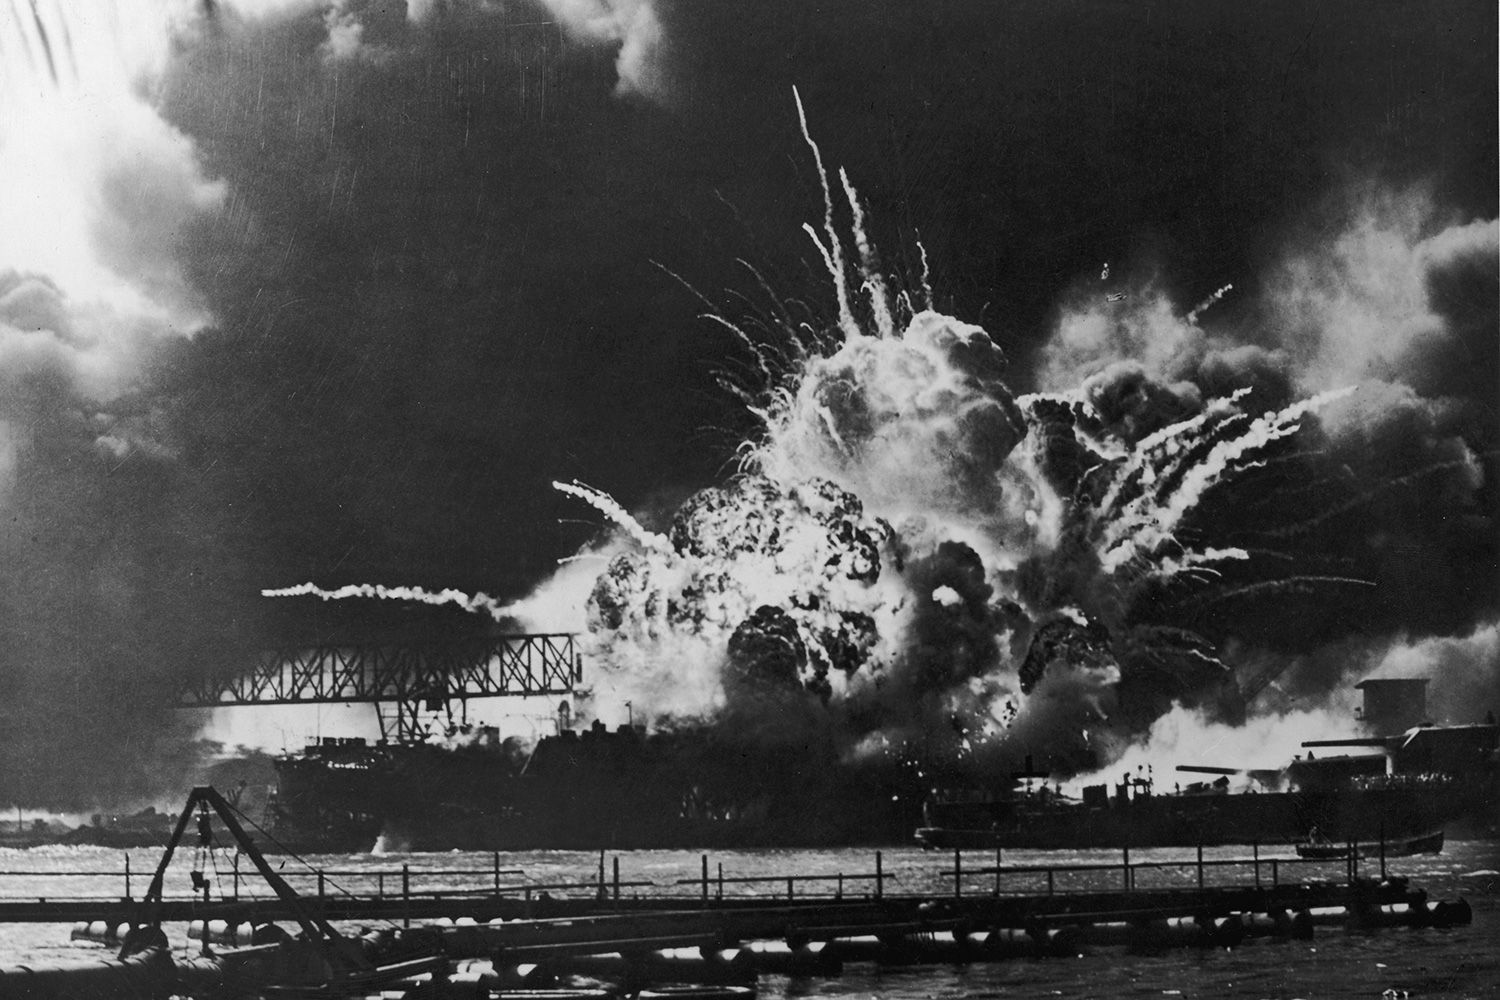 a history of the attack of the naval base at pearl harbor by the japanese On 7 december 1941, over 350 japanese aircraft attacked the us naval base in pearl harbor, hawaii, destroying or badly damaging much of the us pacific fleet and causing thousands of casualties.